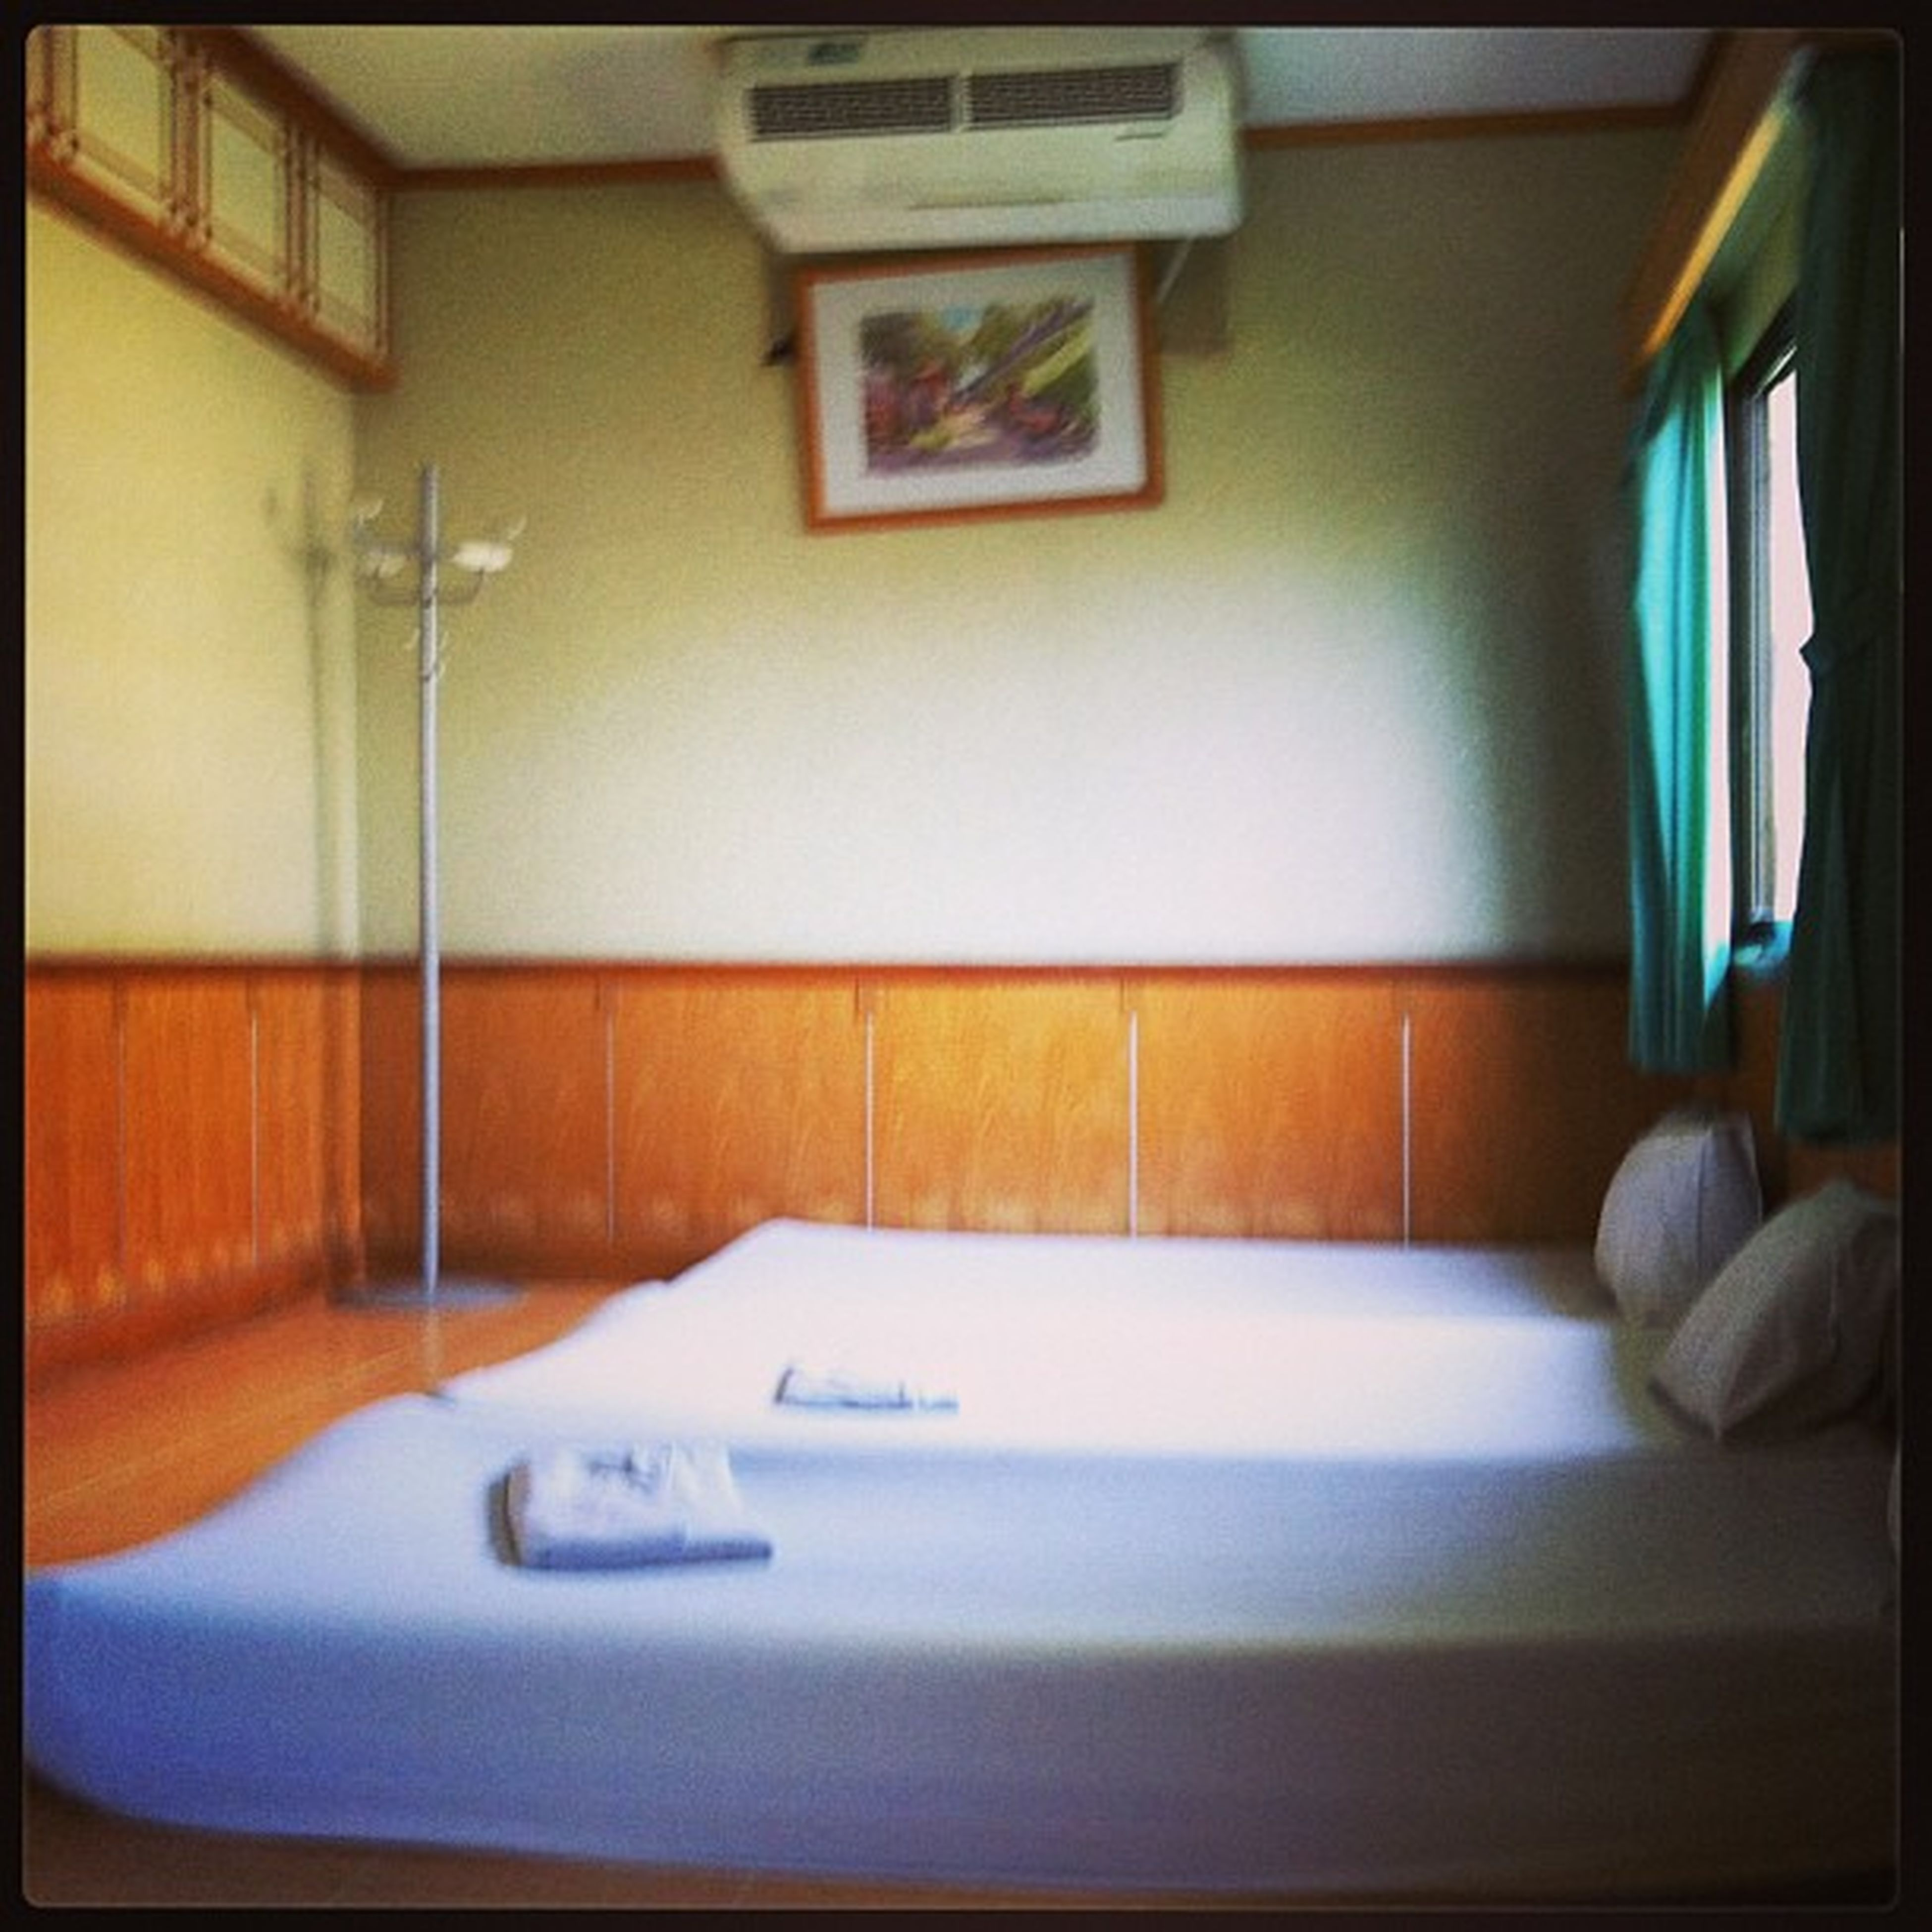 indoors, home interior, bed, domestic room, absence, domestic life, bedroom, empty, desk, domestic bathroom, bathroom, table, healthcare and medicine, hospital, flooring, office, technology, chair